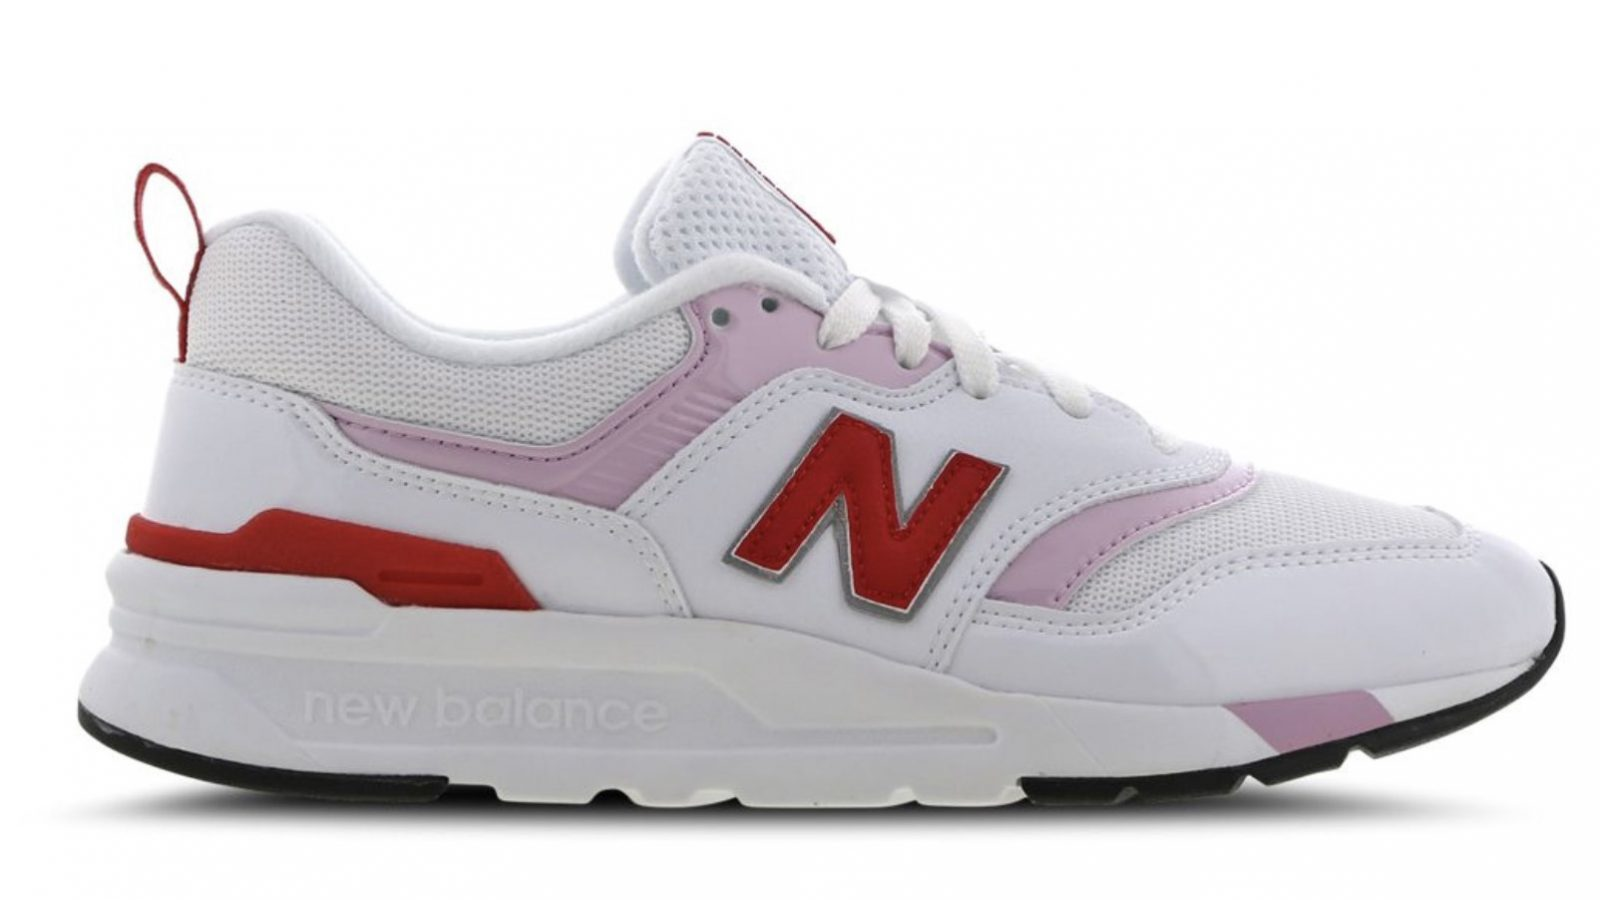 New Balance W997 White Pink Red Side